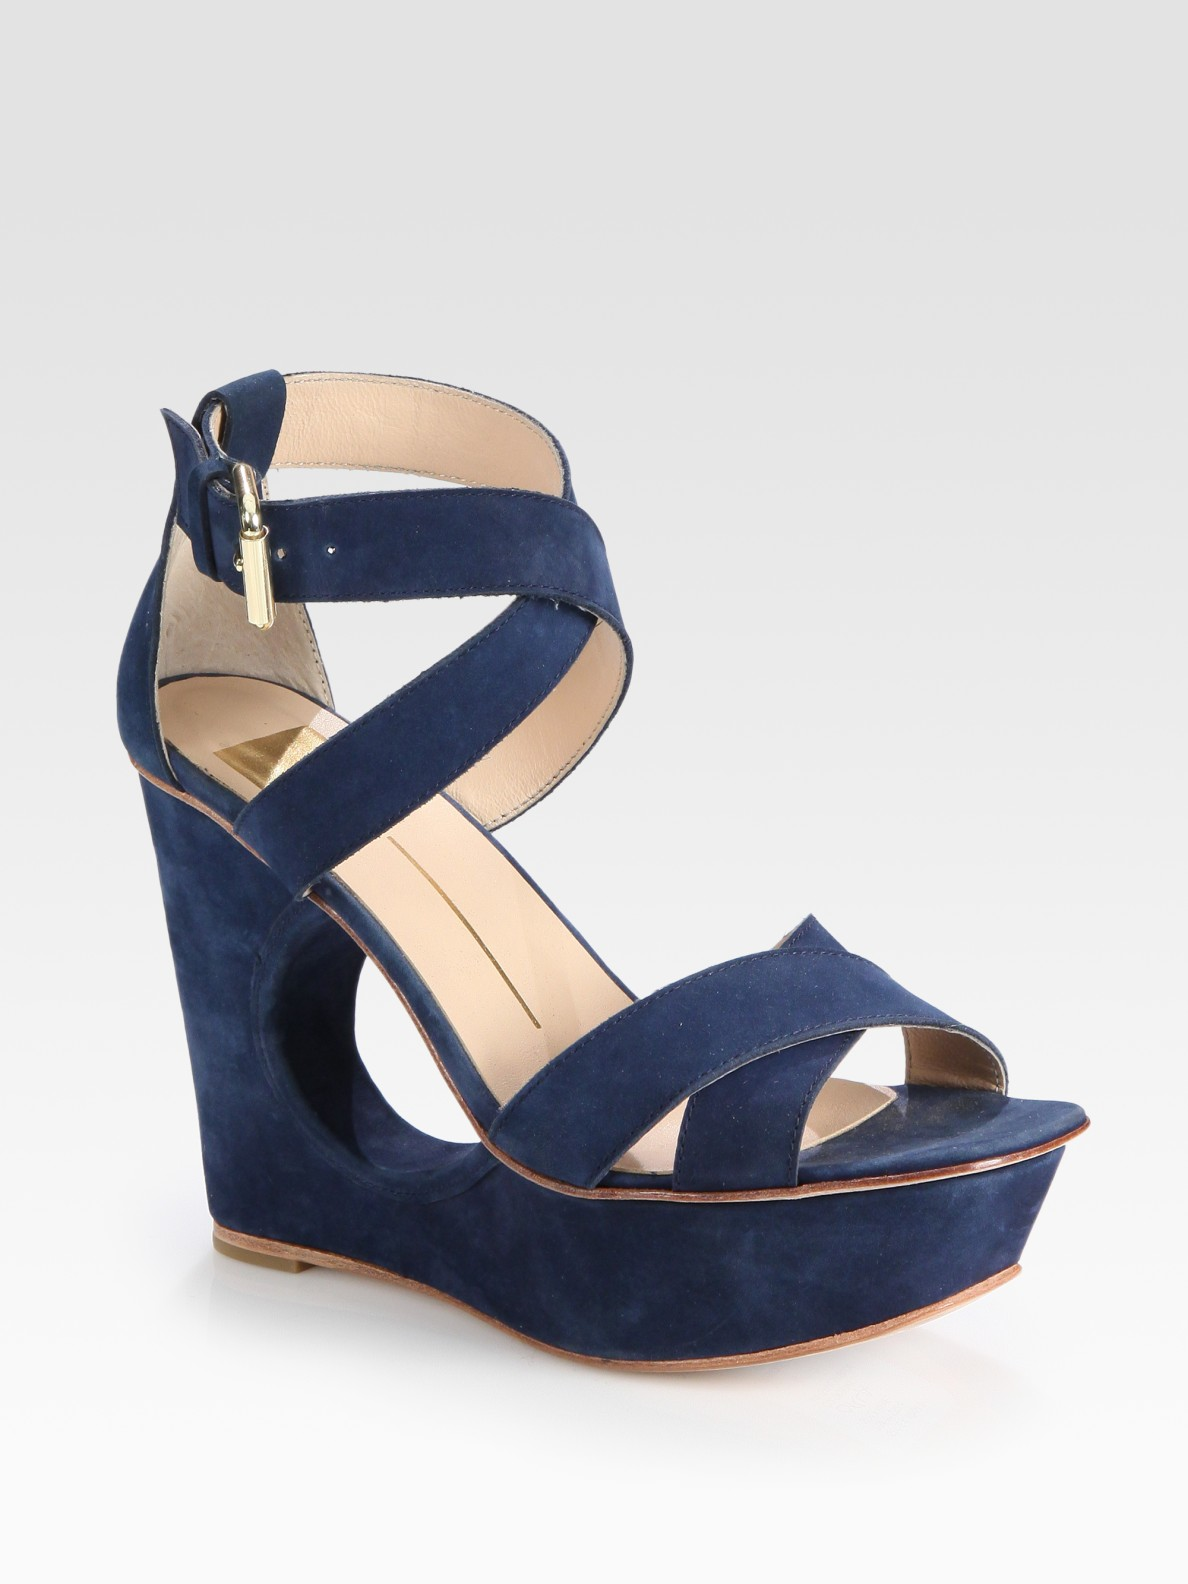 Dolce Vita Suede Cutout Wedge Sandals In Blue Lyst